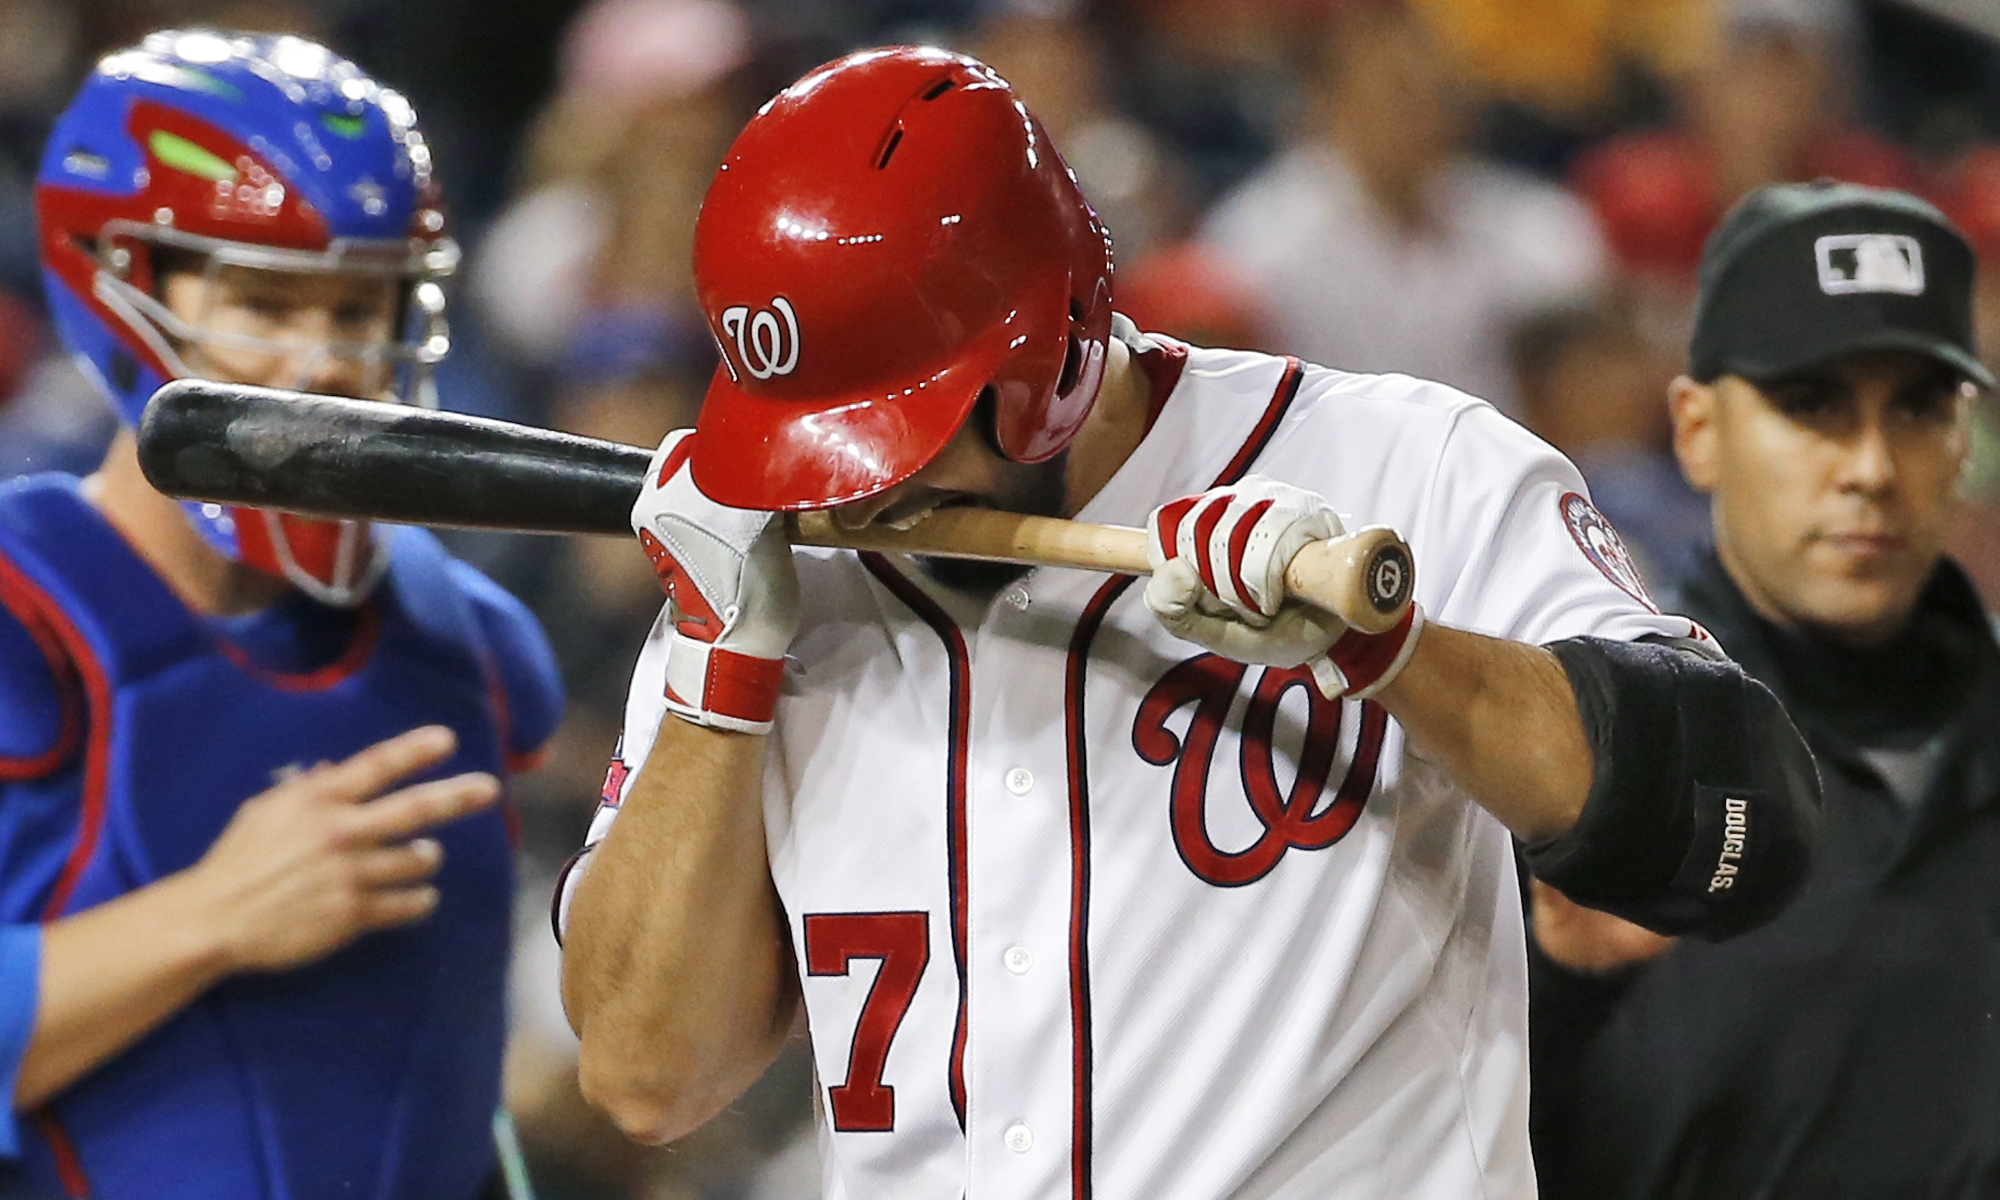 Washington Nationals starting pitcher Gio Gonzalez (47) bites his bat in frustration after striking out on a fouled bunt attempt during the third inning of a baseball game against the Chicago Cubs at Nationals Park, Thursday, June 4, 2015, in Washington.